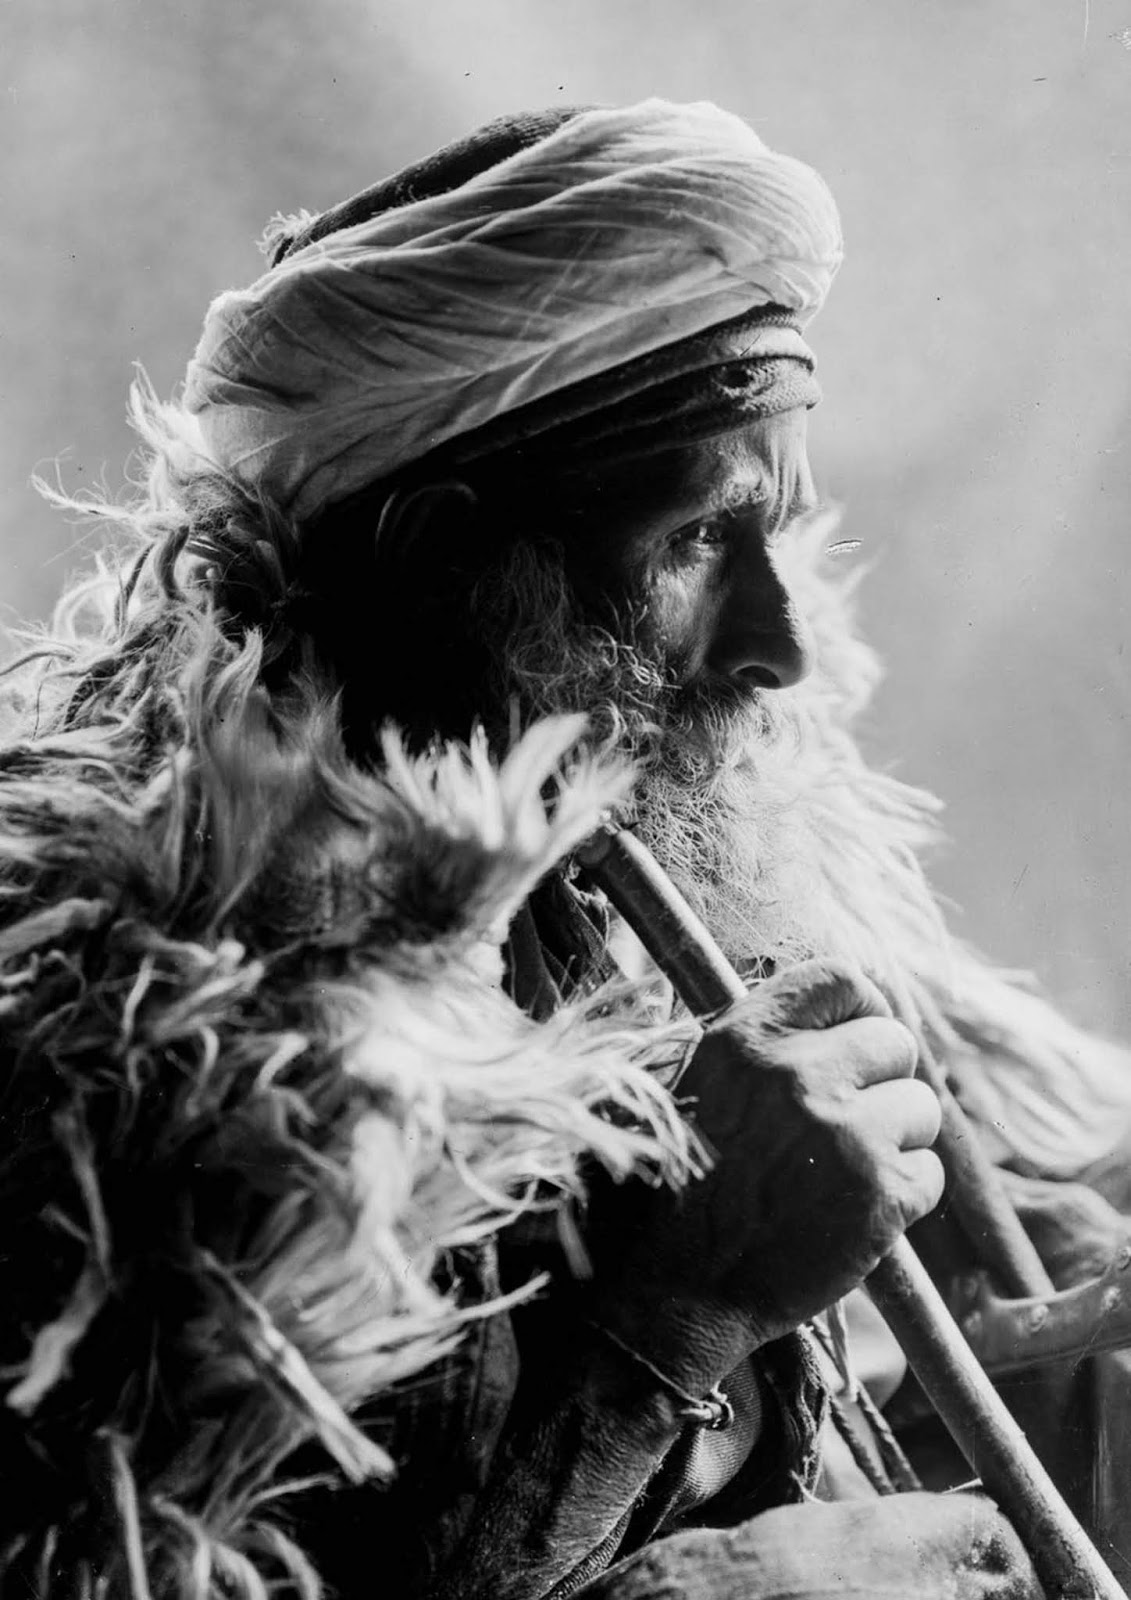 An elderly Bedouin man.